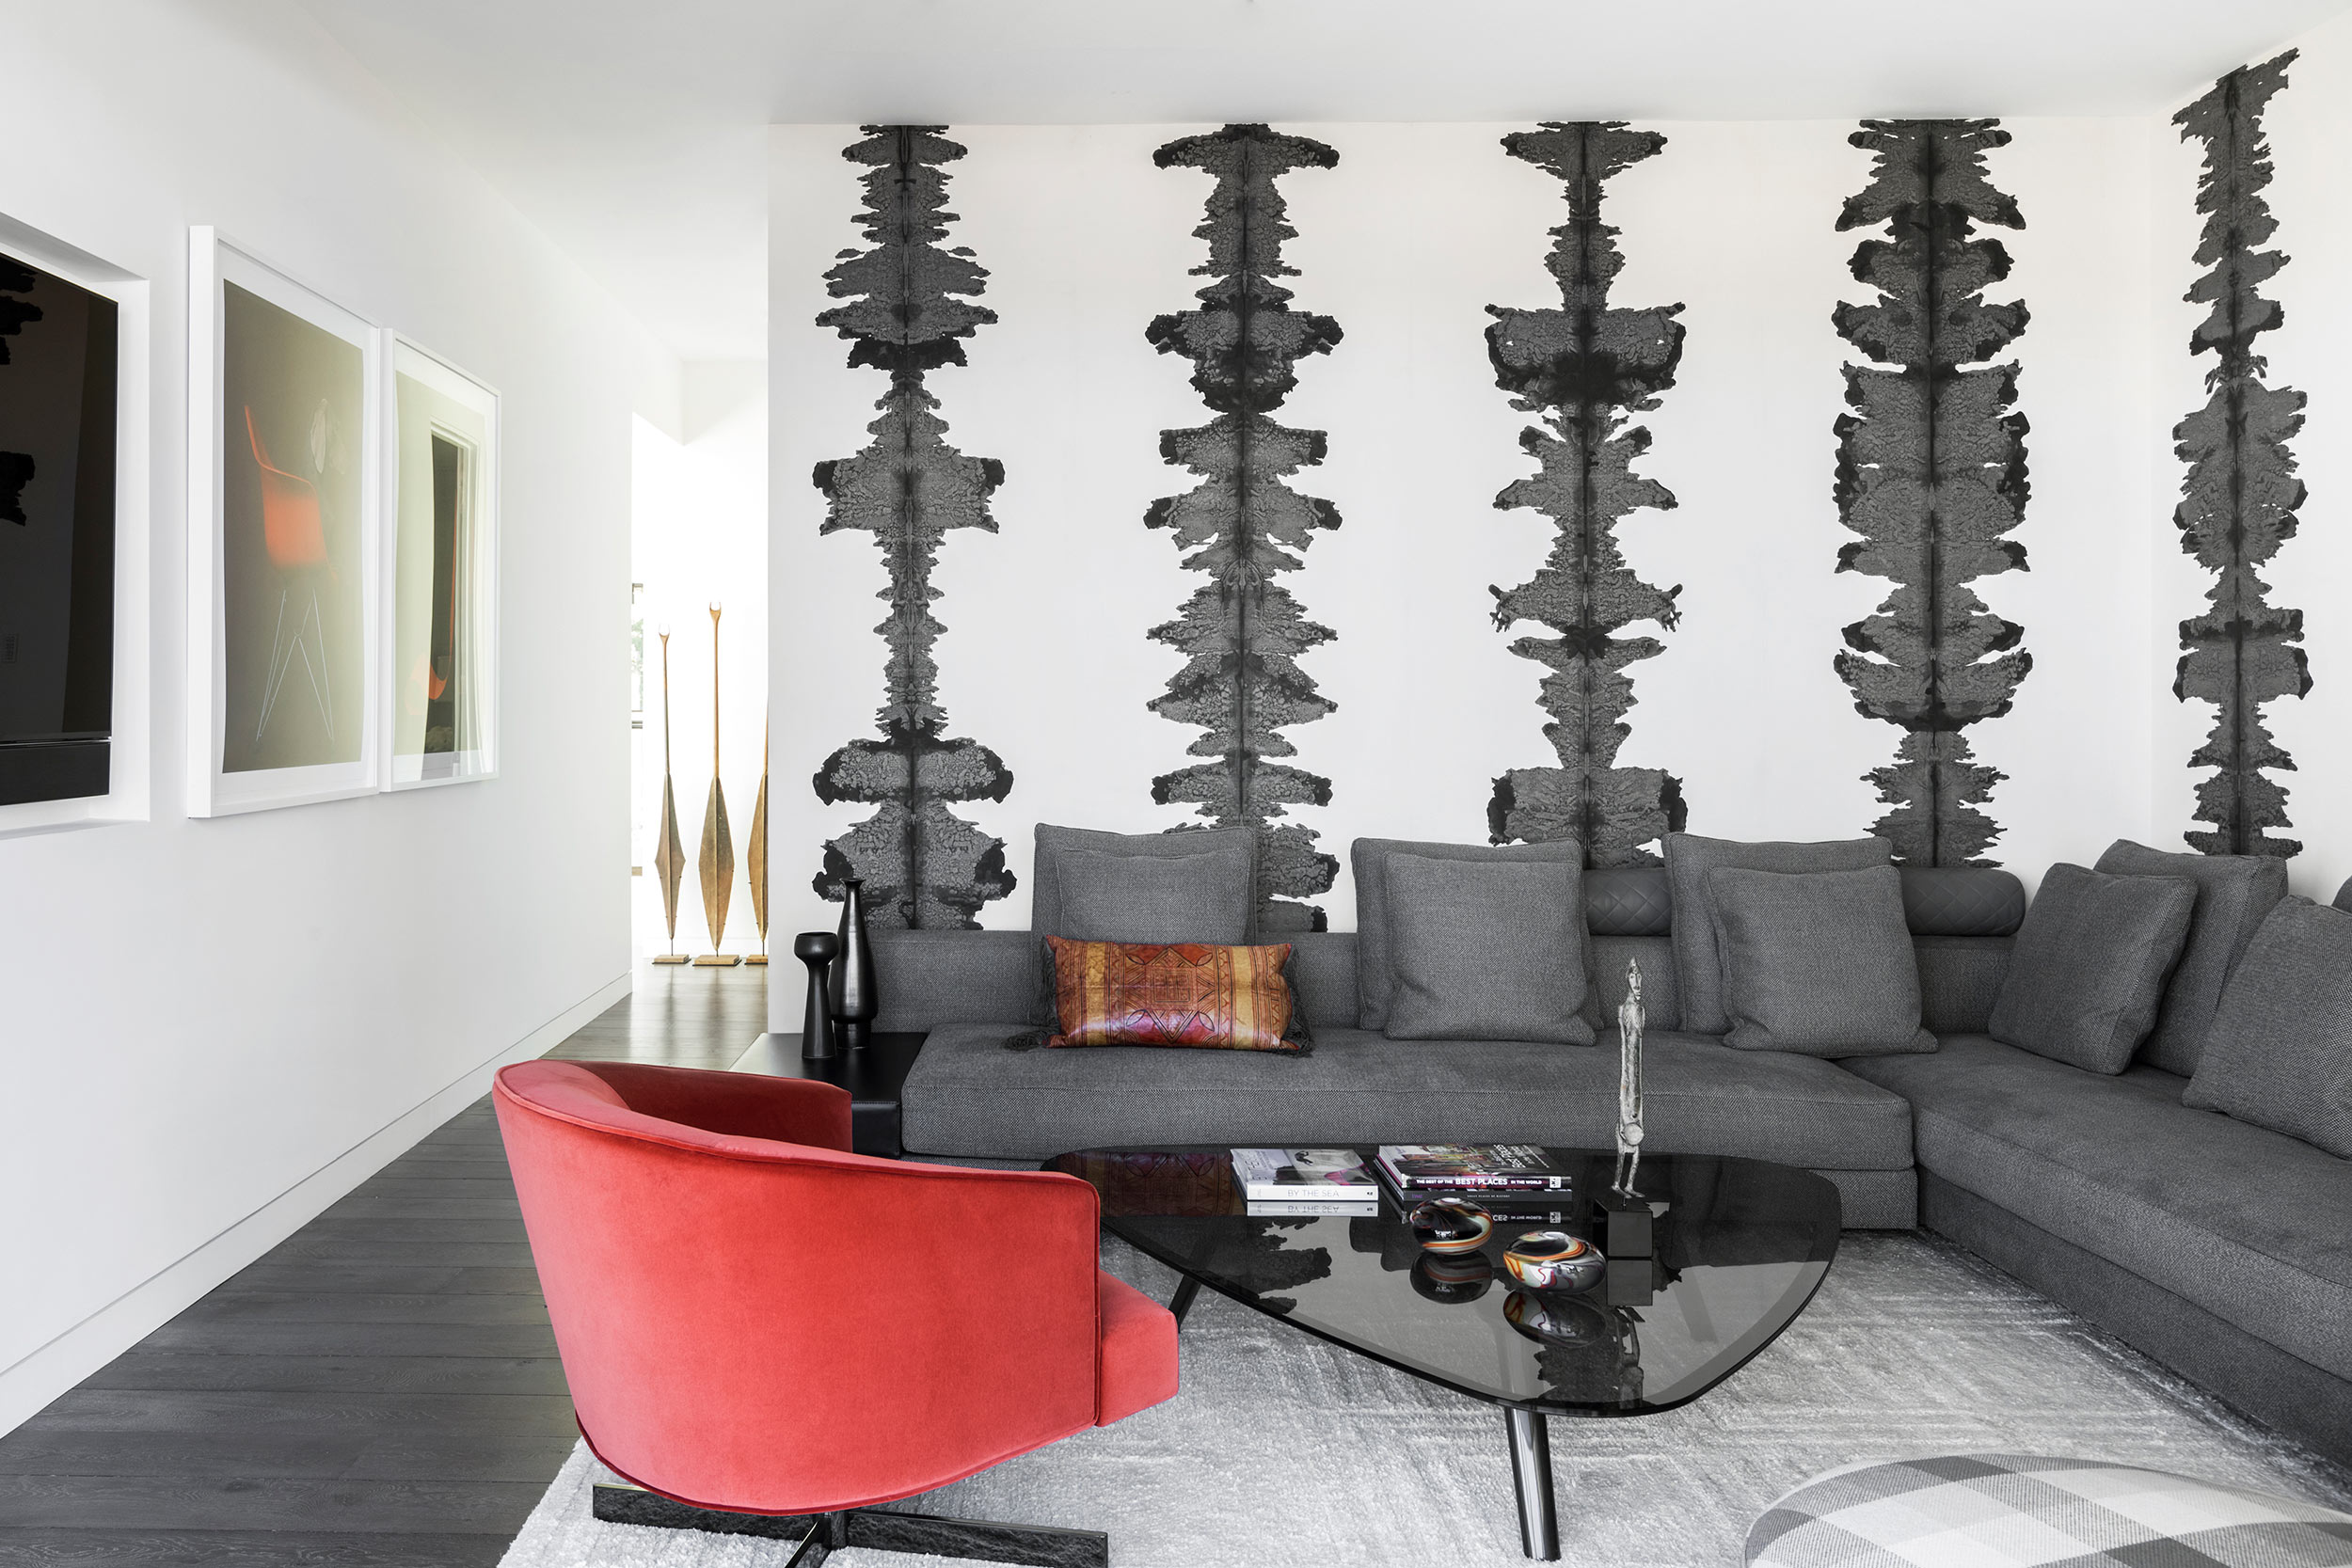 The den with Rorsach-inspired wallpaper in grey is accented with a red chair